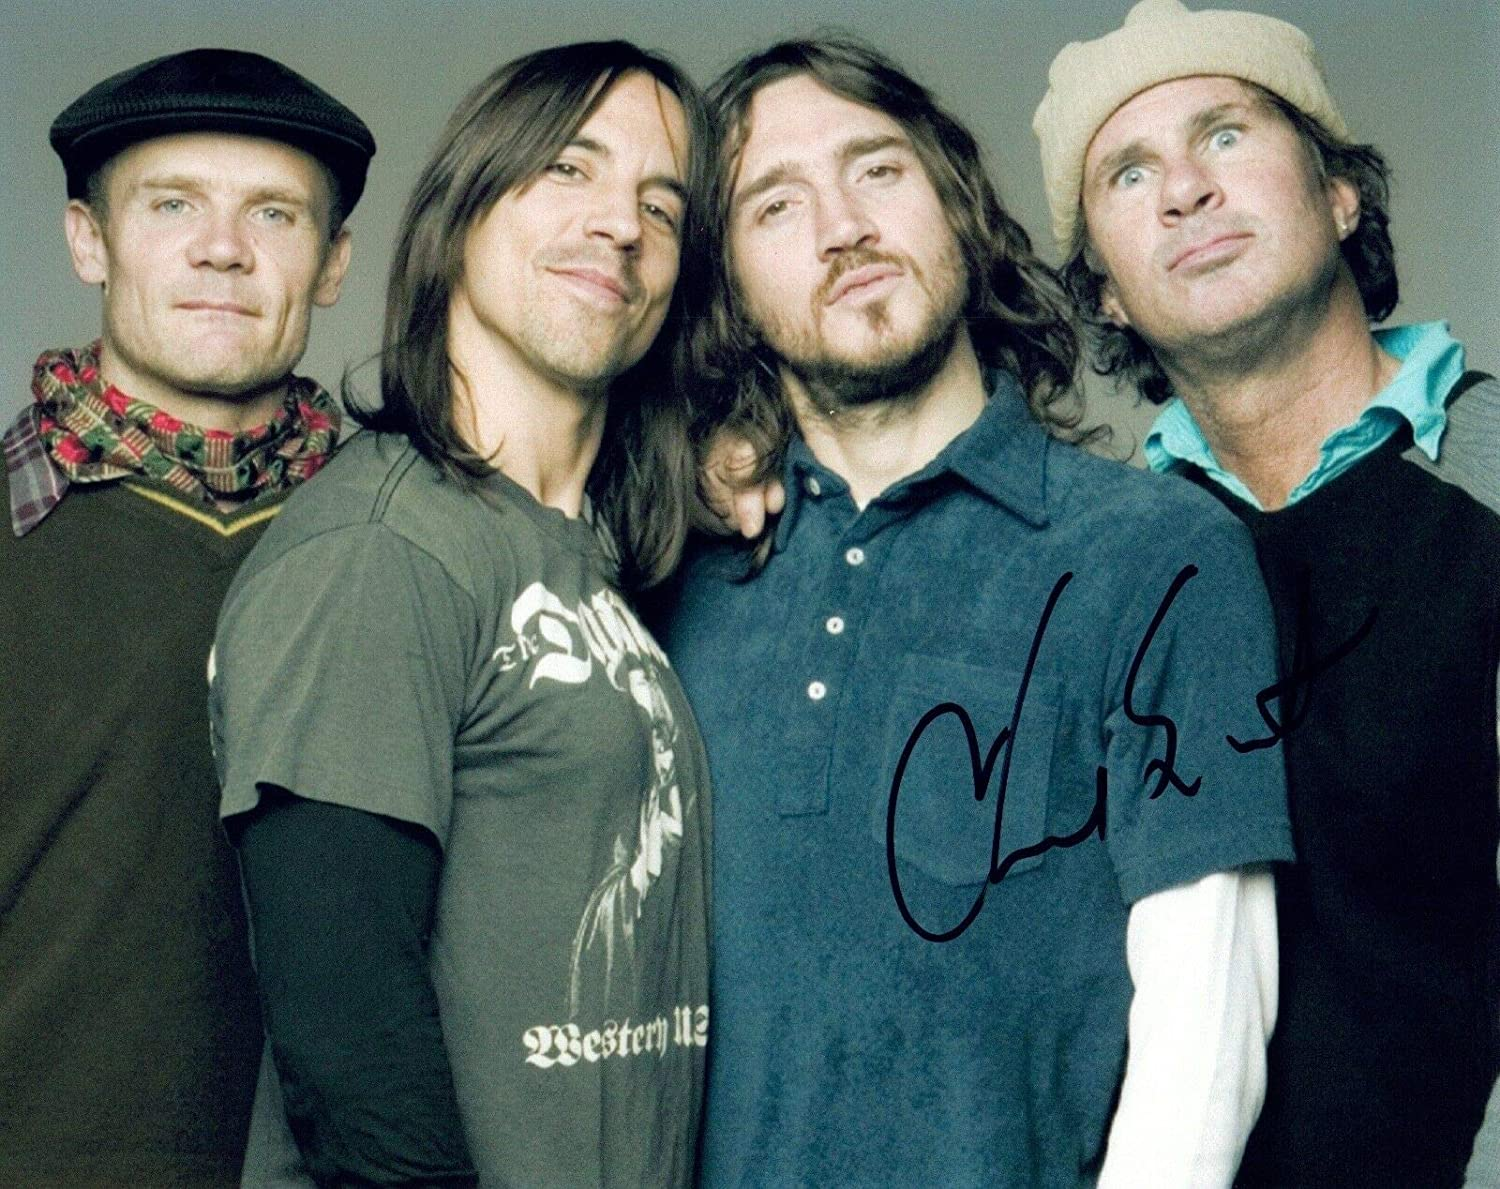 Chad Smith Signed Autographed 8x10 Photo THE RED HOT CHILI PEPPERS Drummer COA at Amazon's Entertainment Collectibles Store